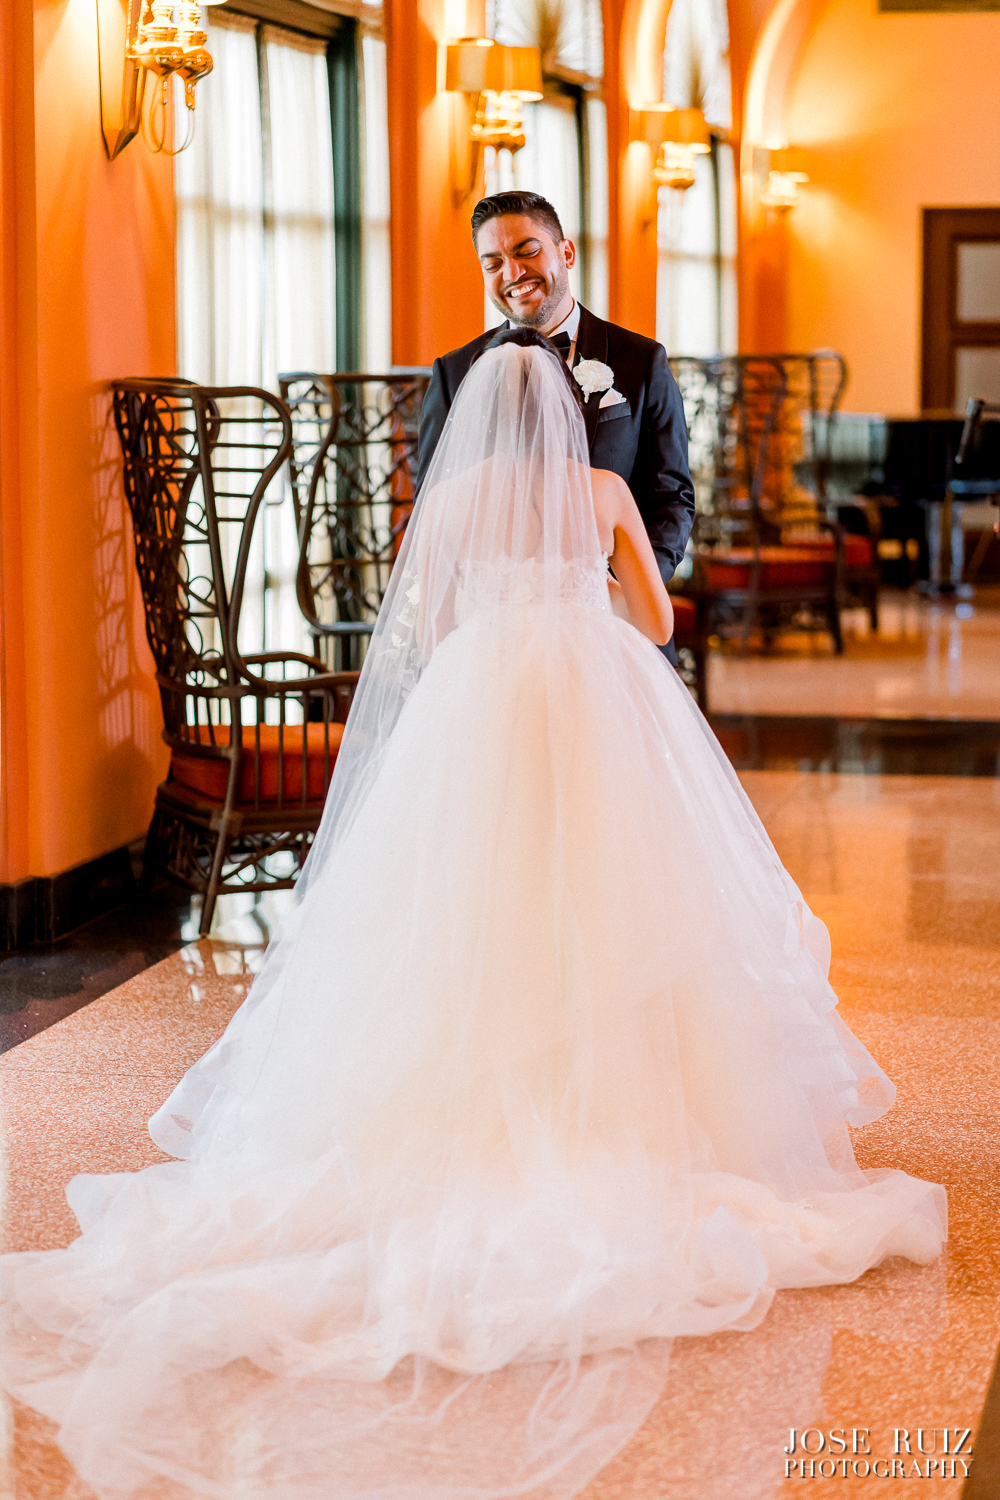 Jose Ruiz Photography- Madalyn & Joel-0030.jpg